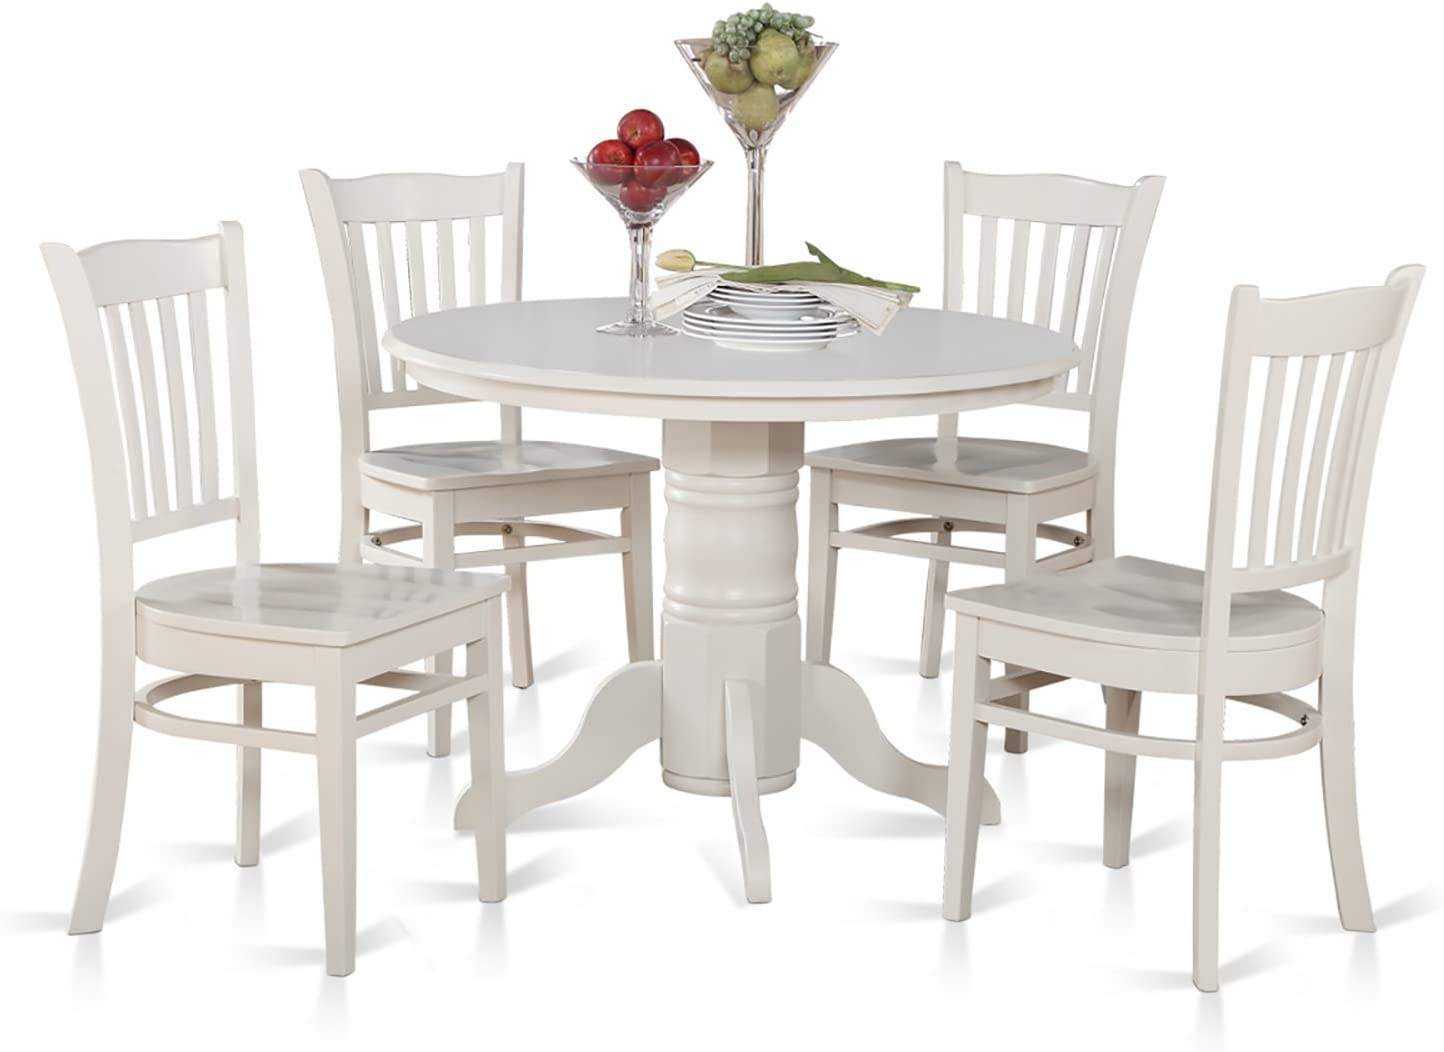 East West Furniture SHGR5-WHI-W 5-Piece Kitchen Table and Chairs Set  sc 1 st  Amazon.com & Table u0026 Chair Sets | Amazon.com islam-shia.org